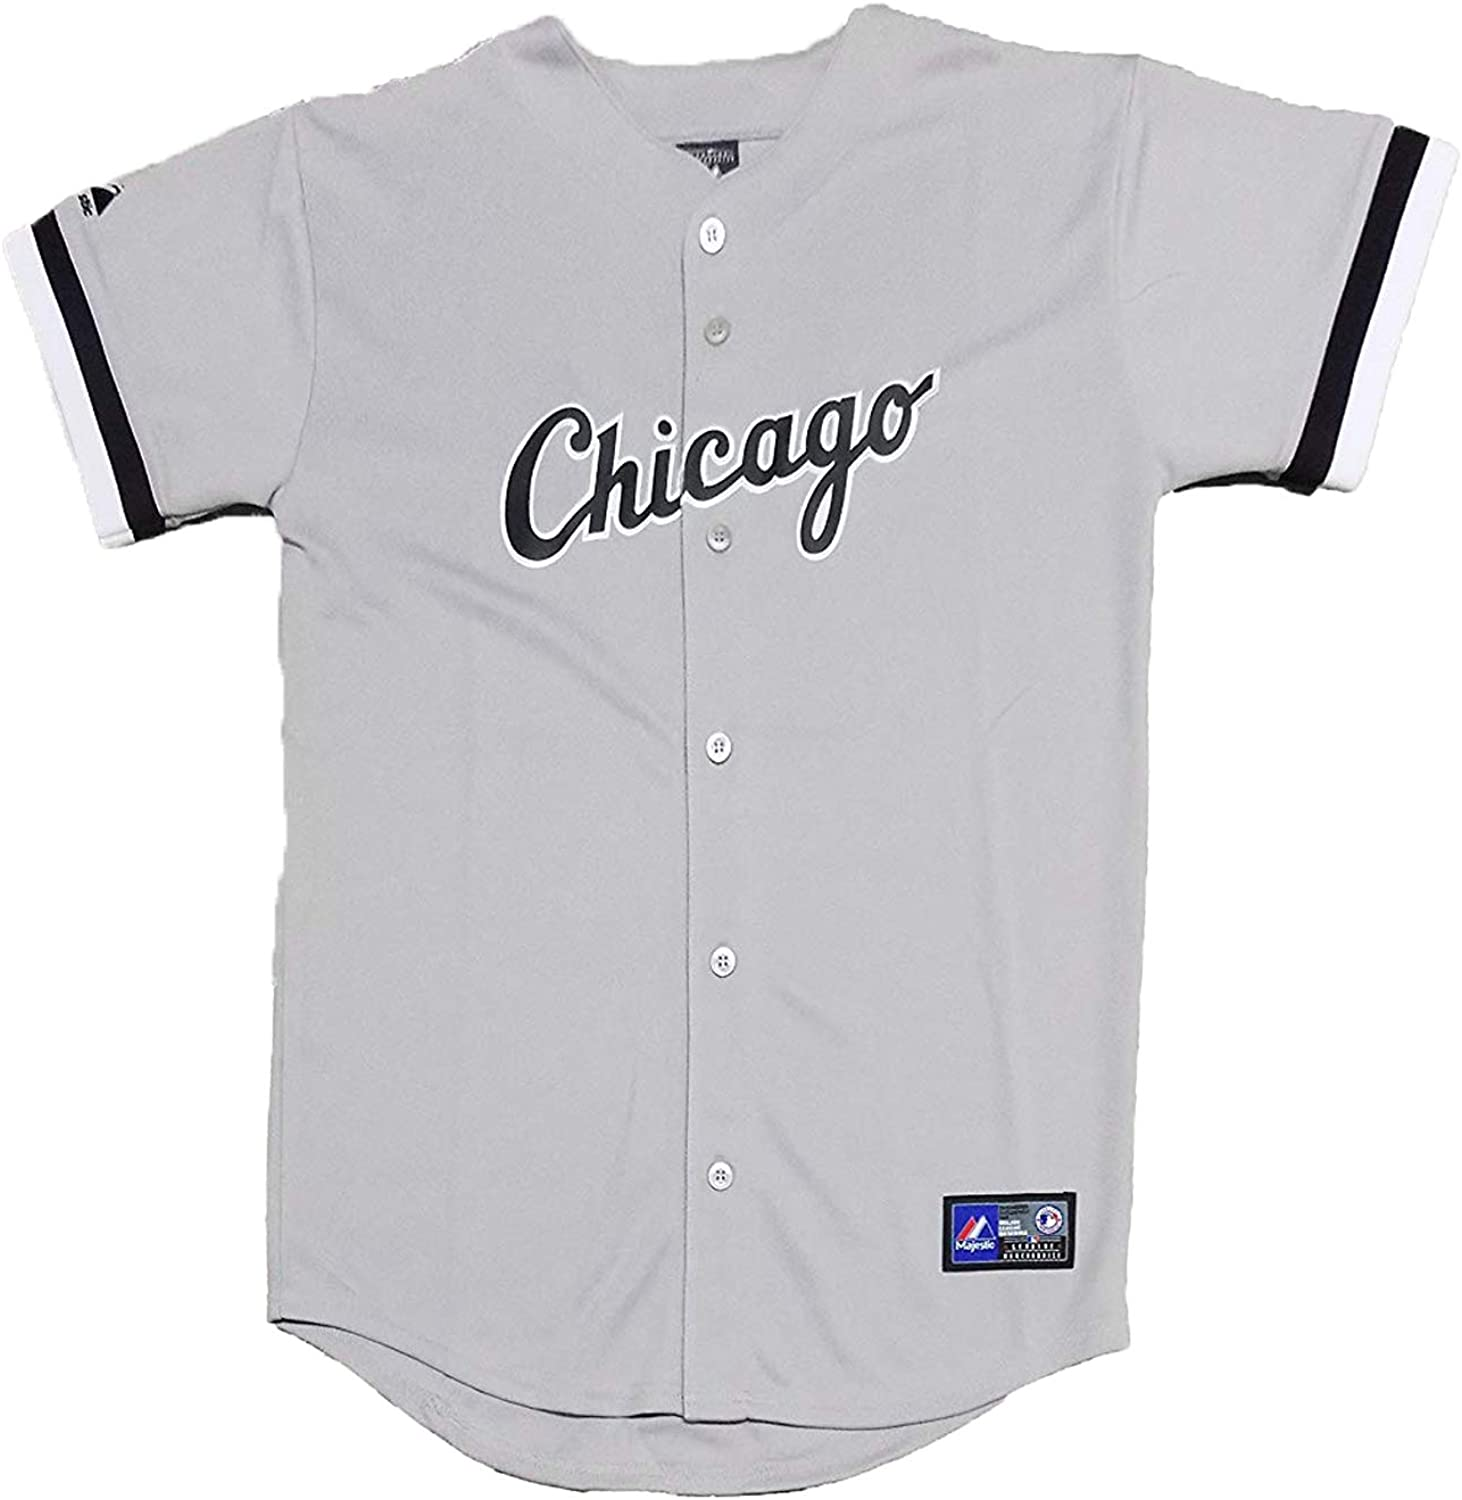 Gordon Beckham Chicago White Sox Gray Youth Authentic Road Replica Jersey